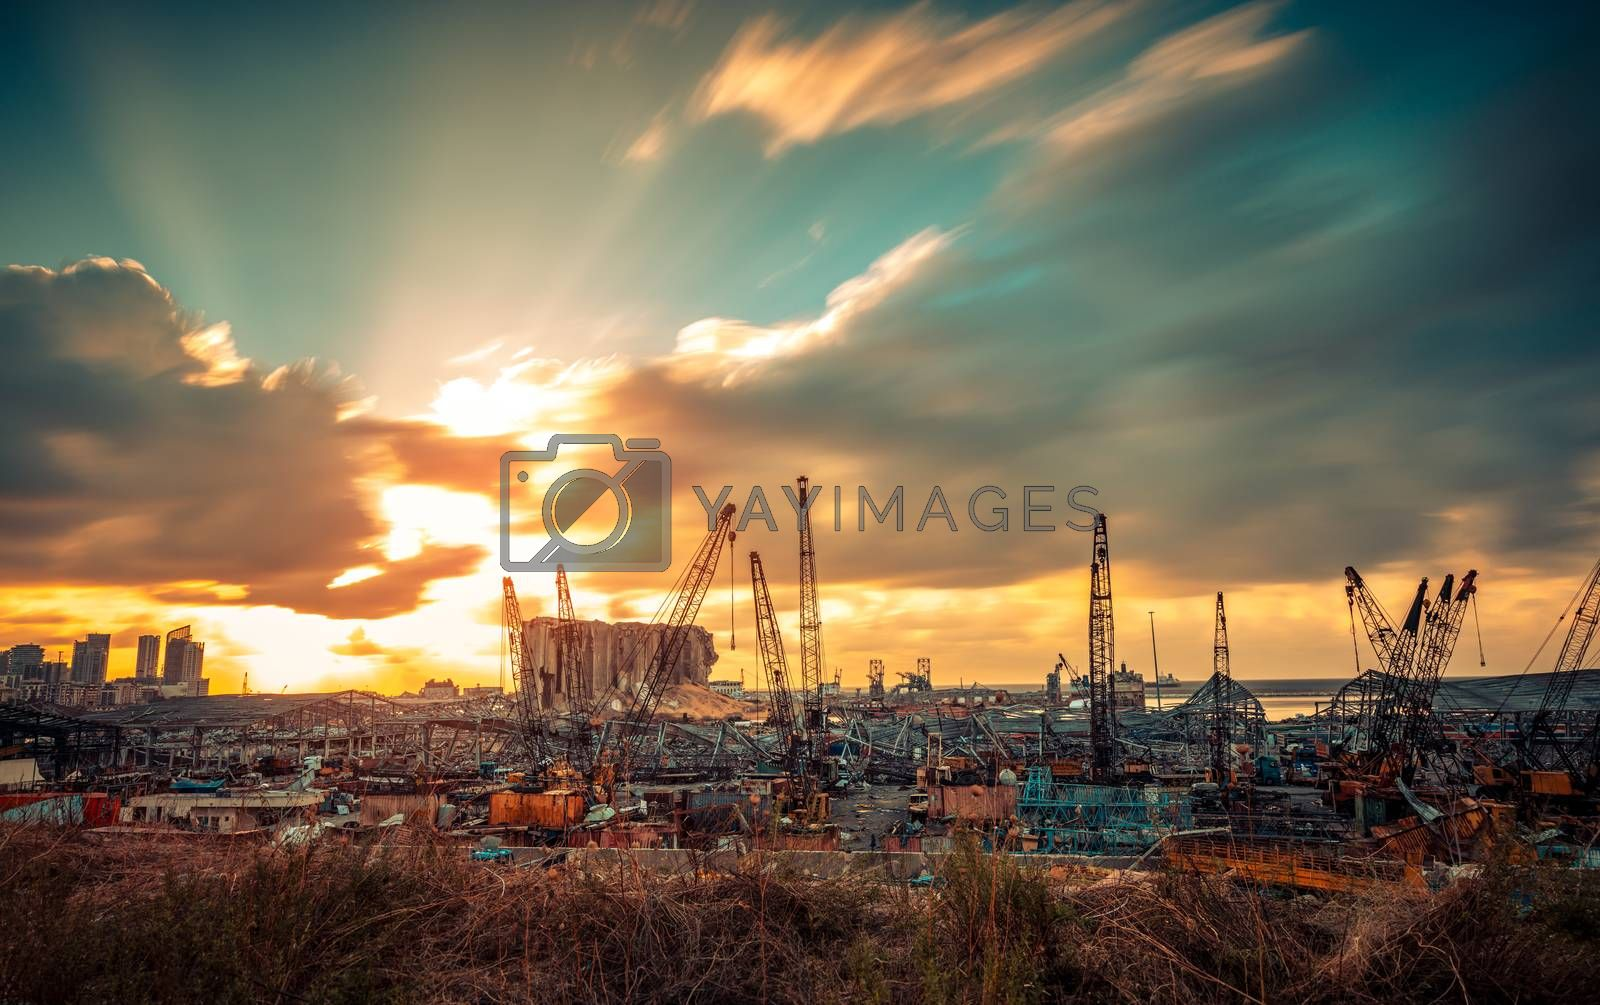 Dramatic Landscape of Ruins After Beirut Explosion. Beautiful Orange Sunset over the Rubble after a Terrible Disaster Blast in Lebanon.